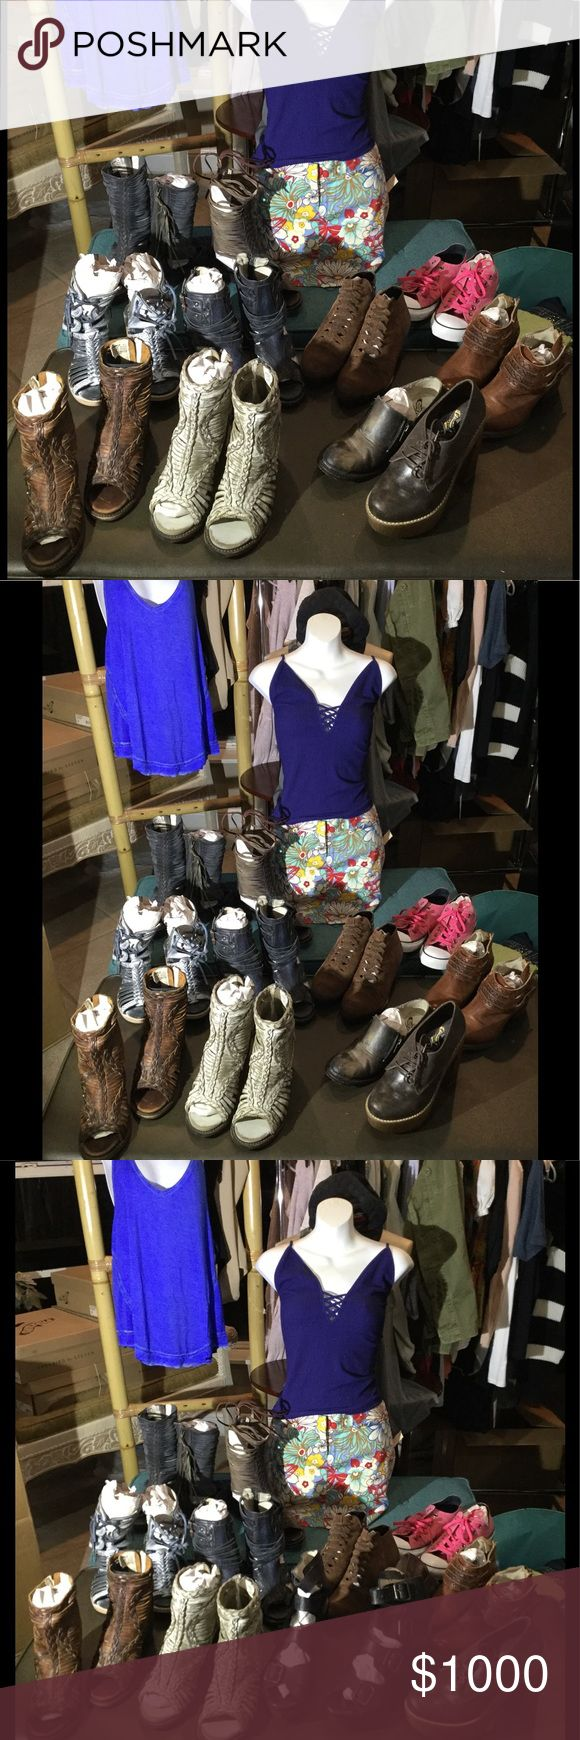 Freebird by steve  group picture Freebird by steve Nest, Bela , mason,  keys, quail,  ask  me about colors and sizes. Every thing is brand new . We carry all different brands for everybody's budget. Steve Madden Shoes Ankle Boots & Booties